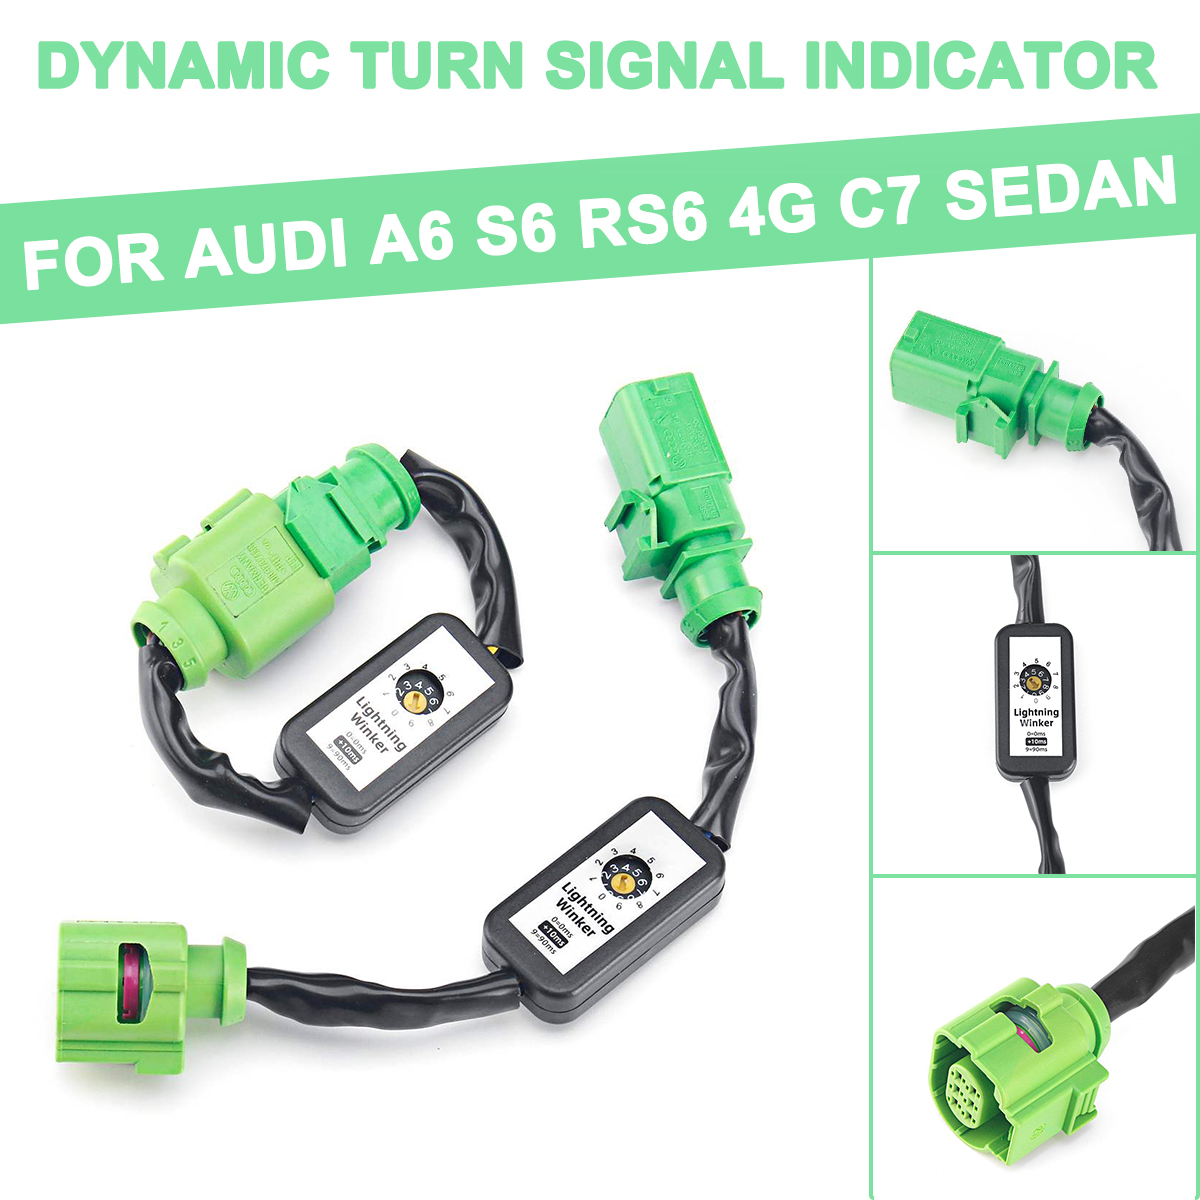 2pcs Dynamic Turn Signal Indicator <font><b>LED</b></font> Taillight Module Cable Wire Harness For <font><b>Audi</b></font> <font><b>A6</b></font> S6 RS6 4G C7 Sedan Left&Right <font><b>Tail</b></font> <font><b>Light</b></font> image